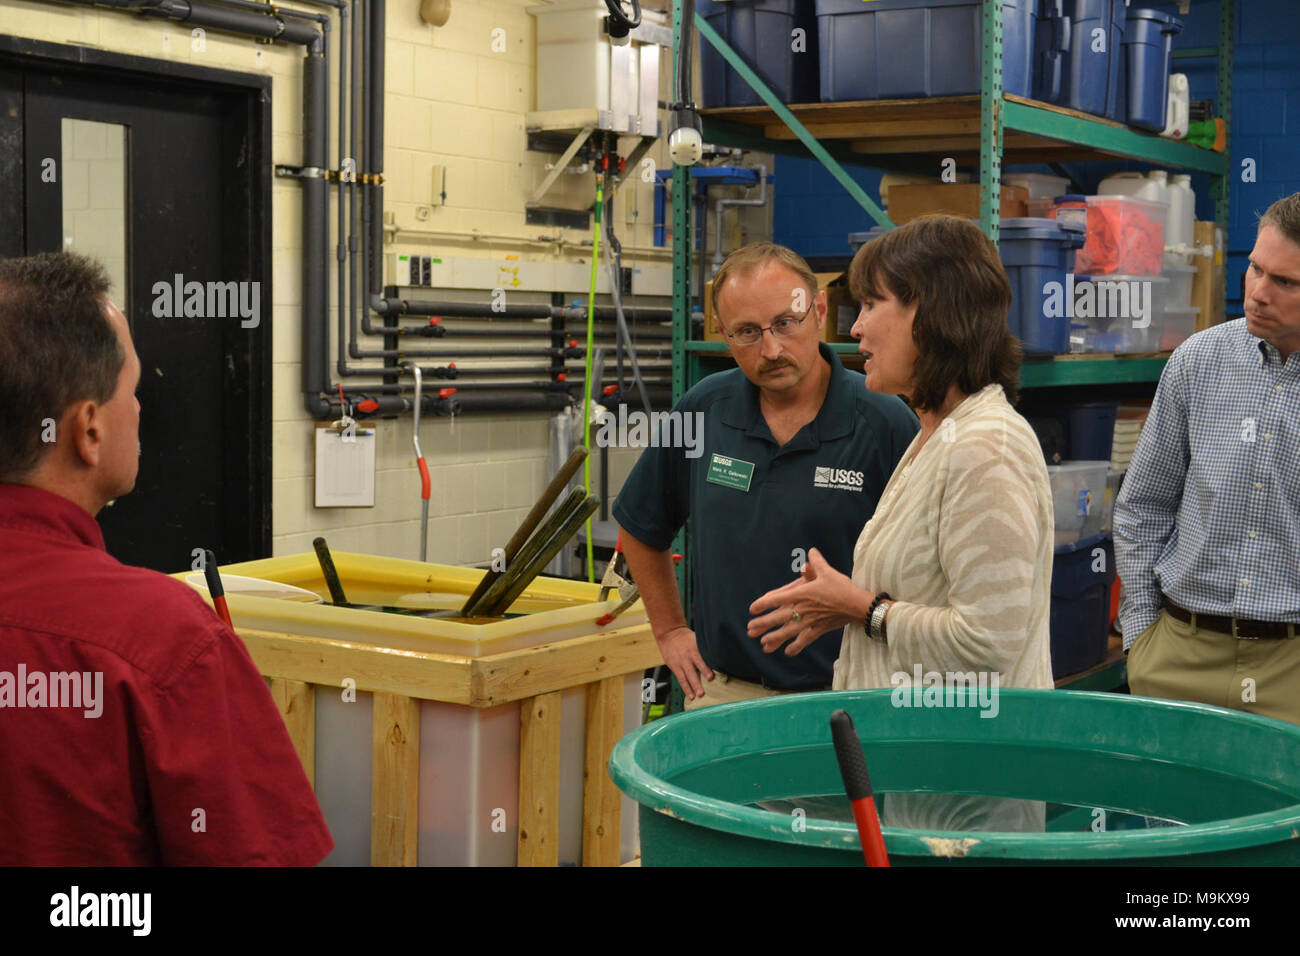 Rep. Betty McCollum (D-Minn.) chats with Mark Gaikowski, a research physiologist with the U.S. Geological Survey (USGS). Photo by Garrett Peterson/USFWS. - Stock Image